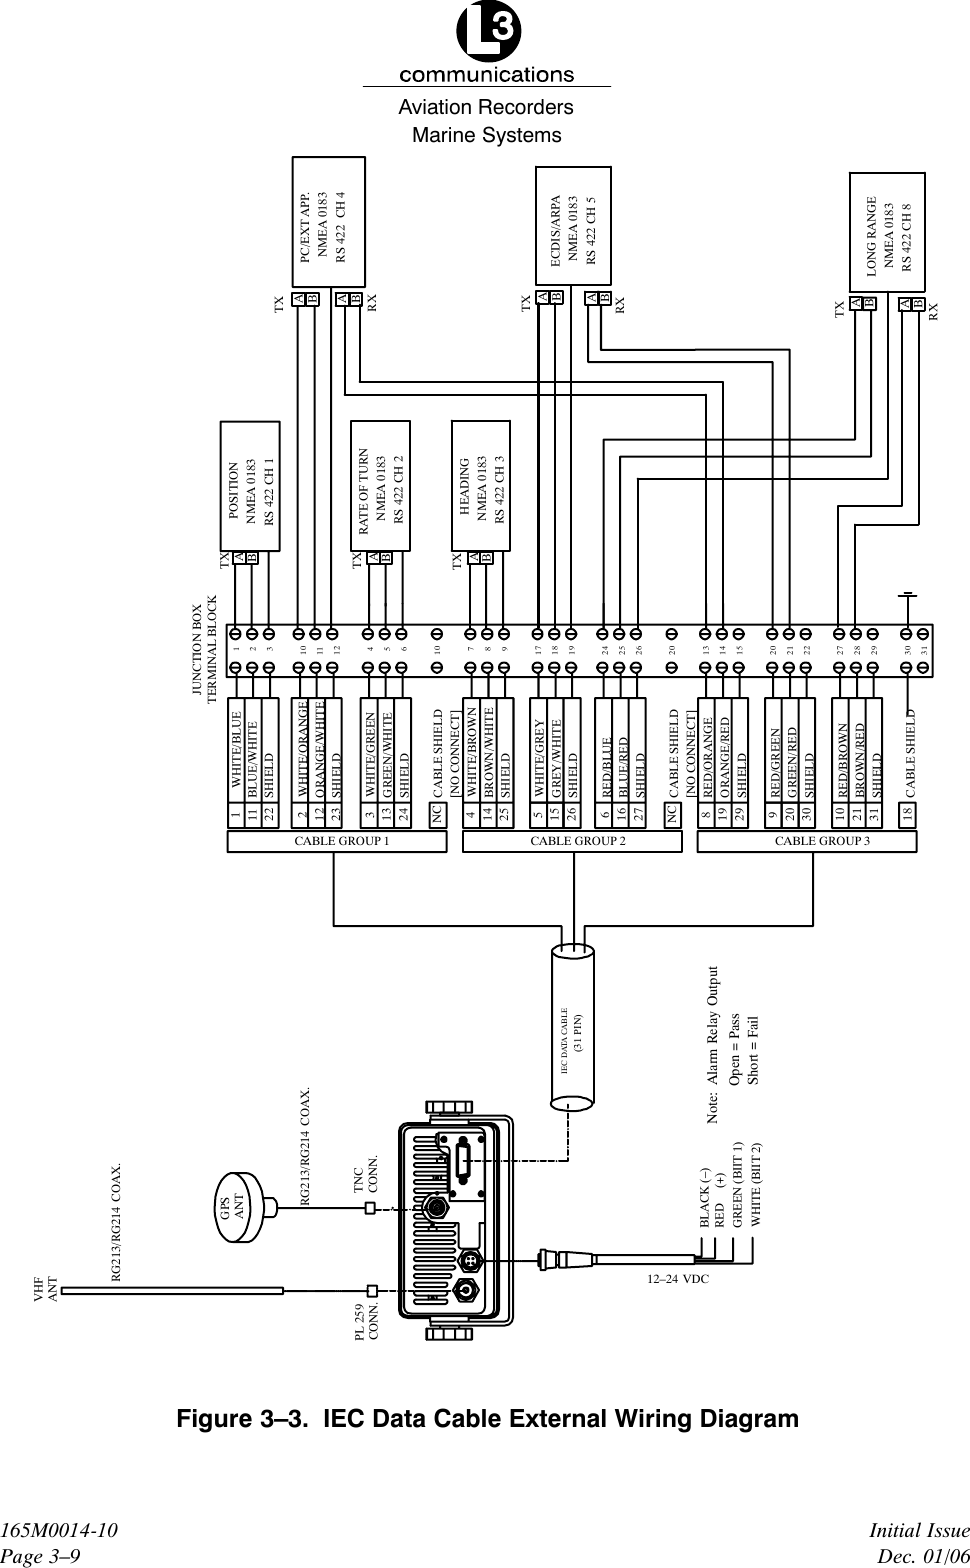 L3 Technologies Aisa1 Shipboard Use User Manual Protec Ais Hardware Coax Cable Schematic Marine Systemsaviation Recordersinitial Issuedec 01 06165m0014 10page 391224 Vdcblack